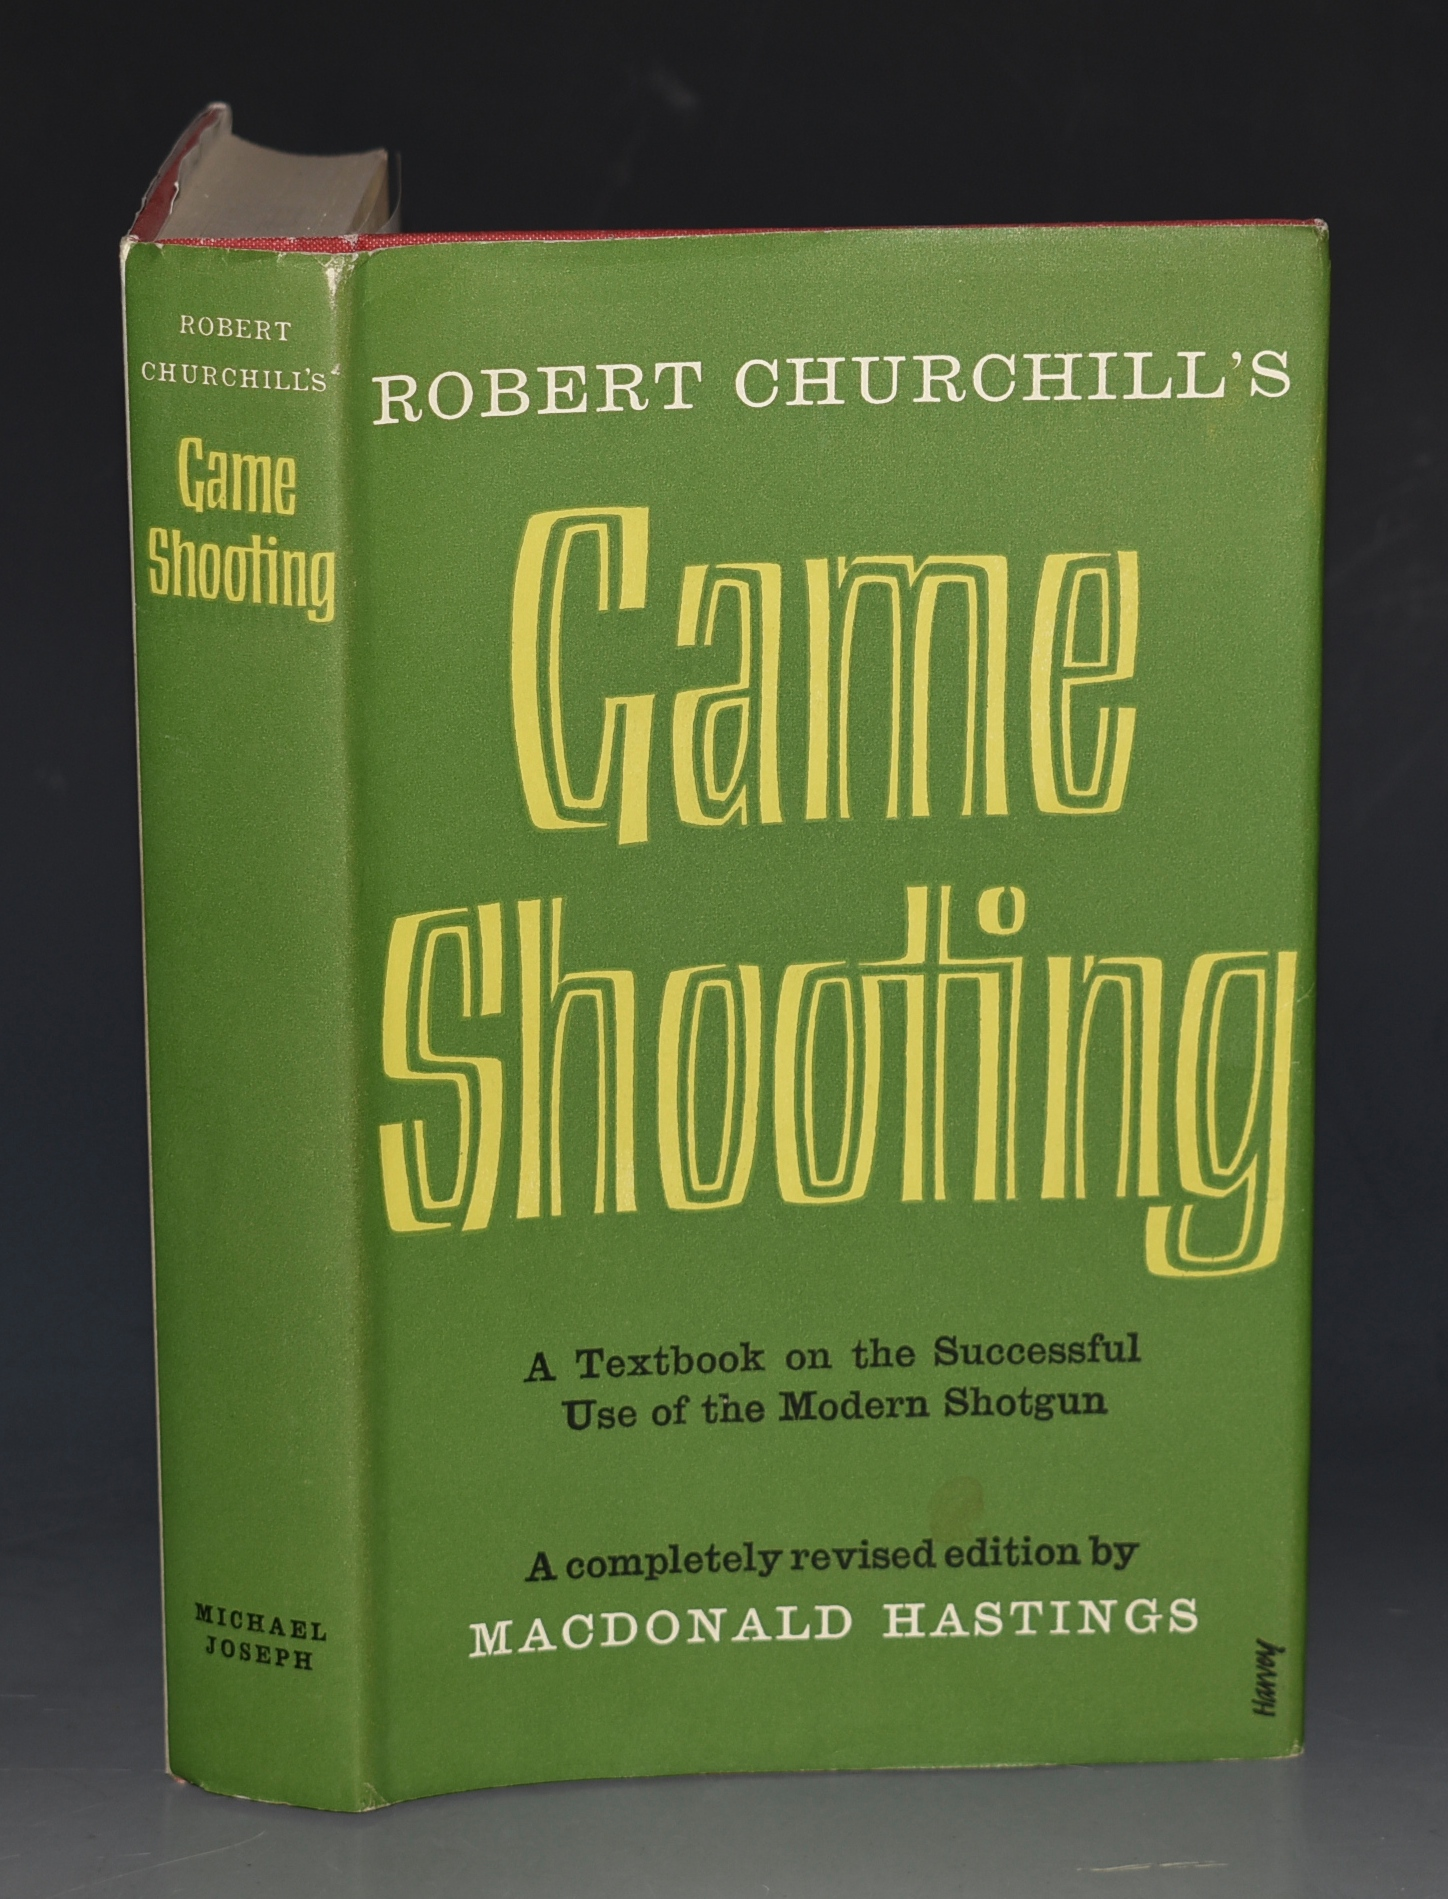 Image for Game Shooting A Textbook on the successful use of the modern shotgun. Revised edition by Macdonald Hastings.